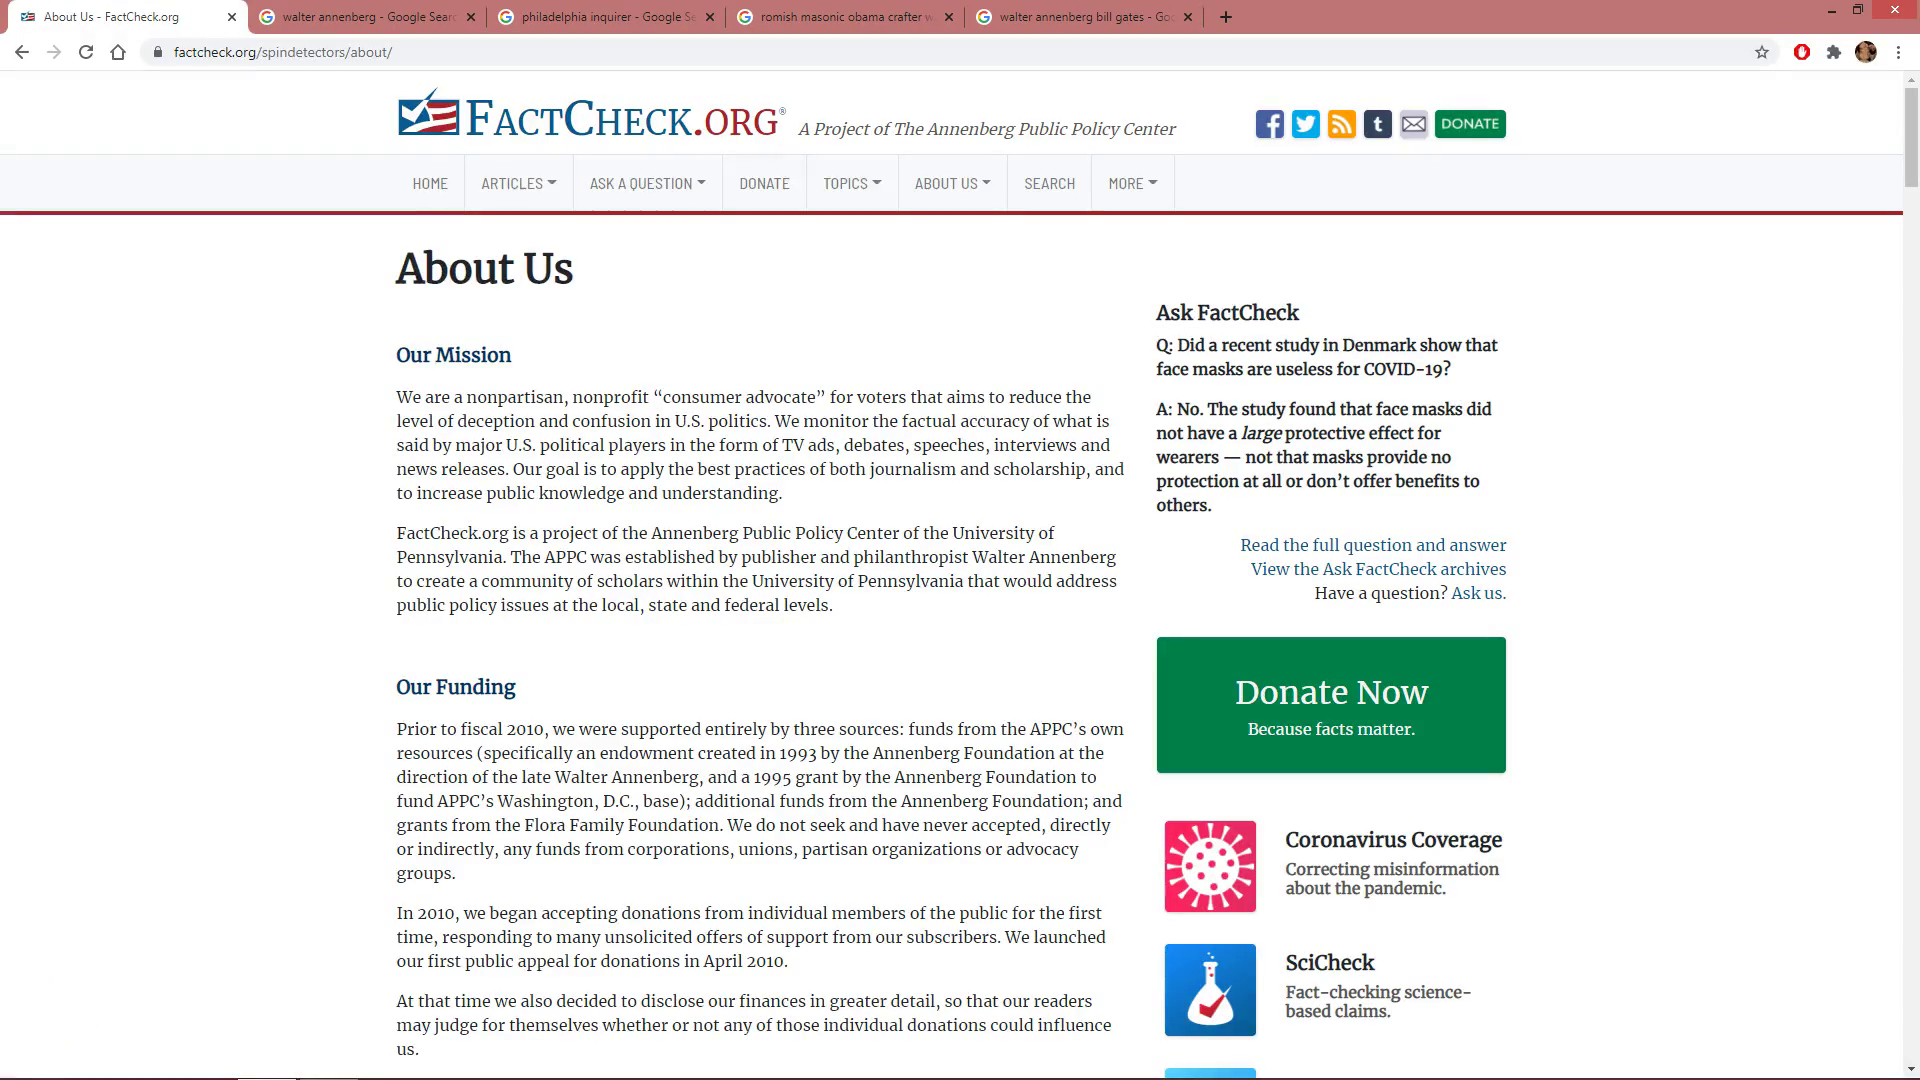 FactCheck.org Founded by Jewish Mason EXPOSED- by Matty D.